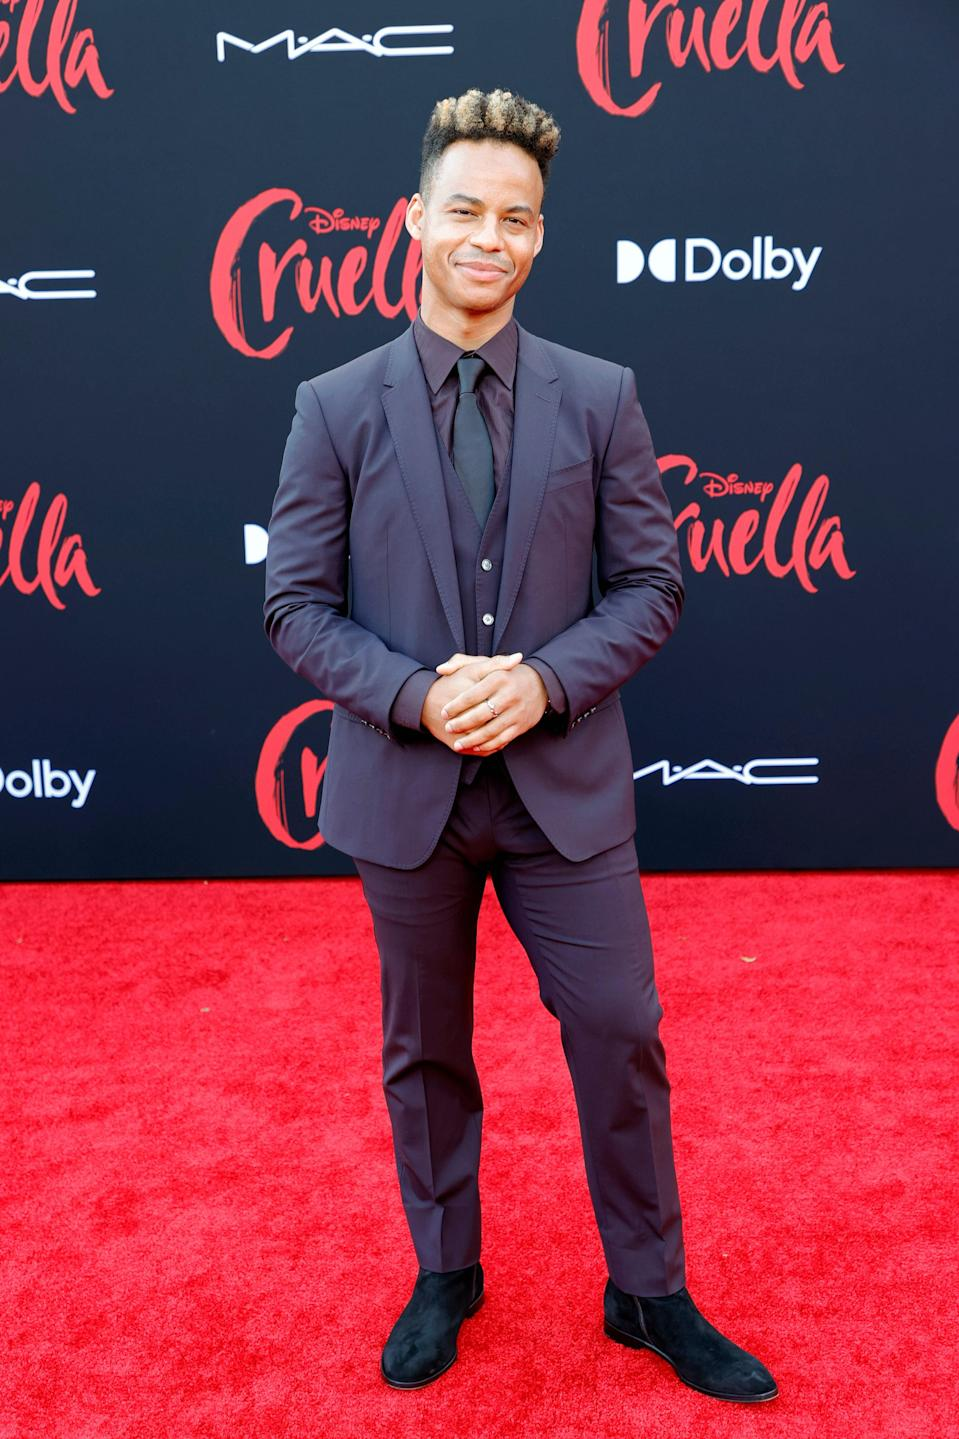 The fellow <em>HSM:TM:TS</em> actor had on a monochrome look consisting navy blue three-piece suit and a shirt and tie in similar tones.